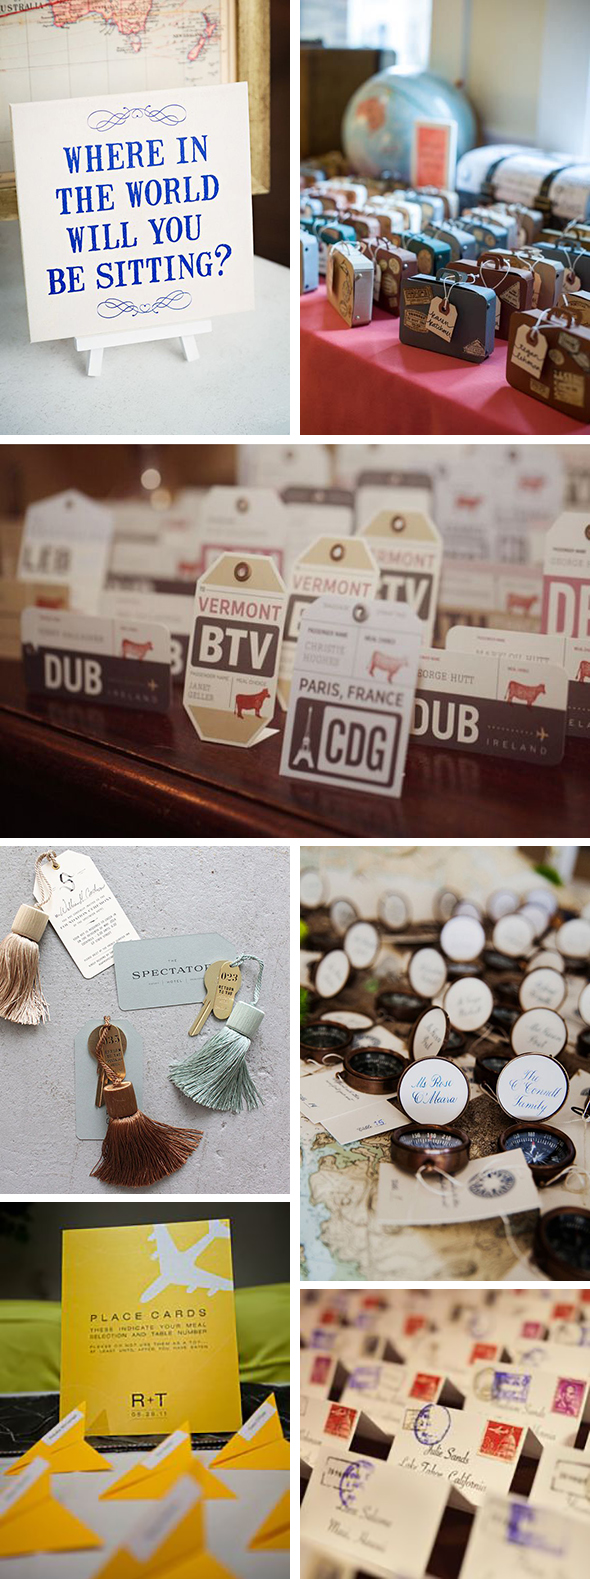 travel themed place cards